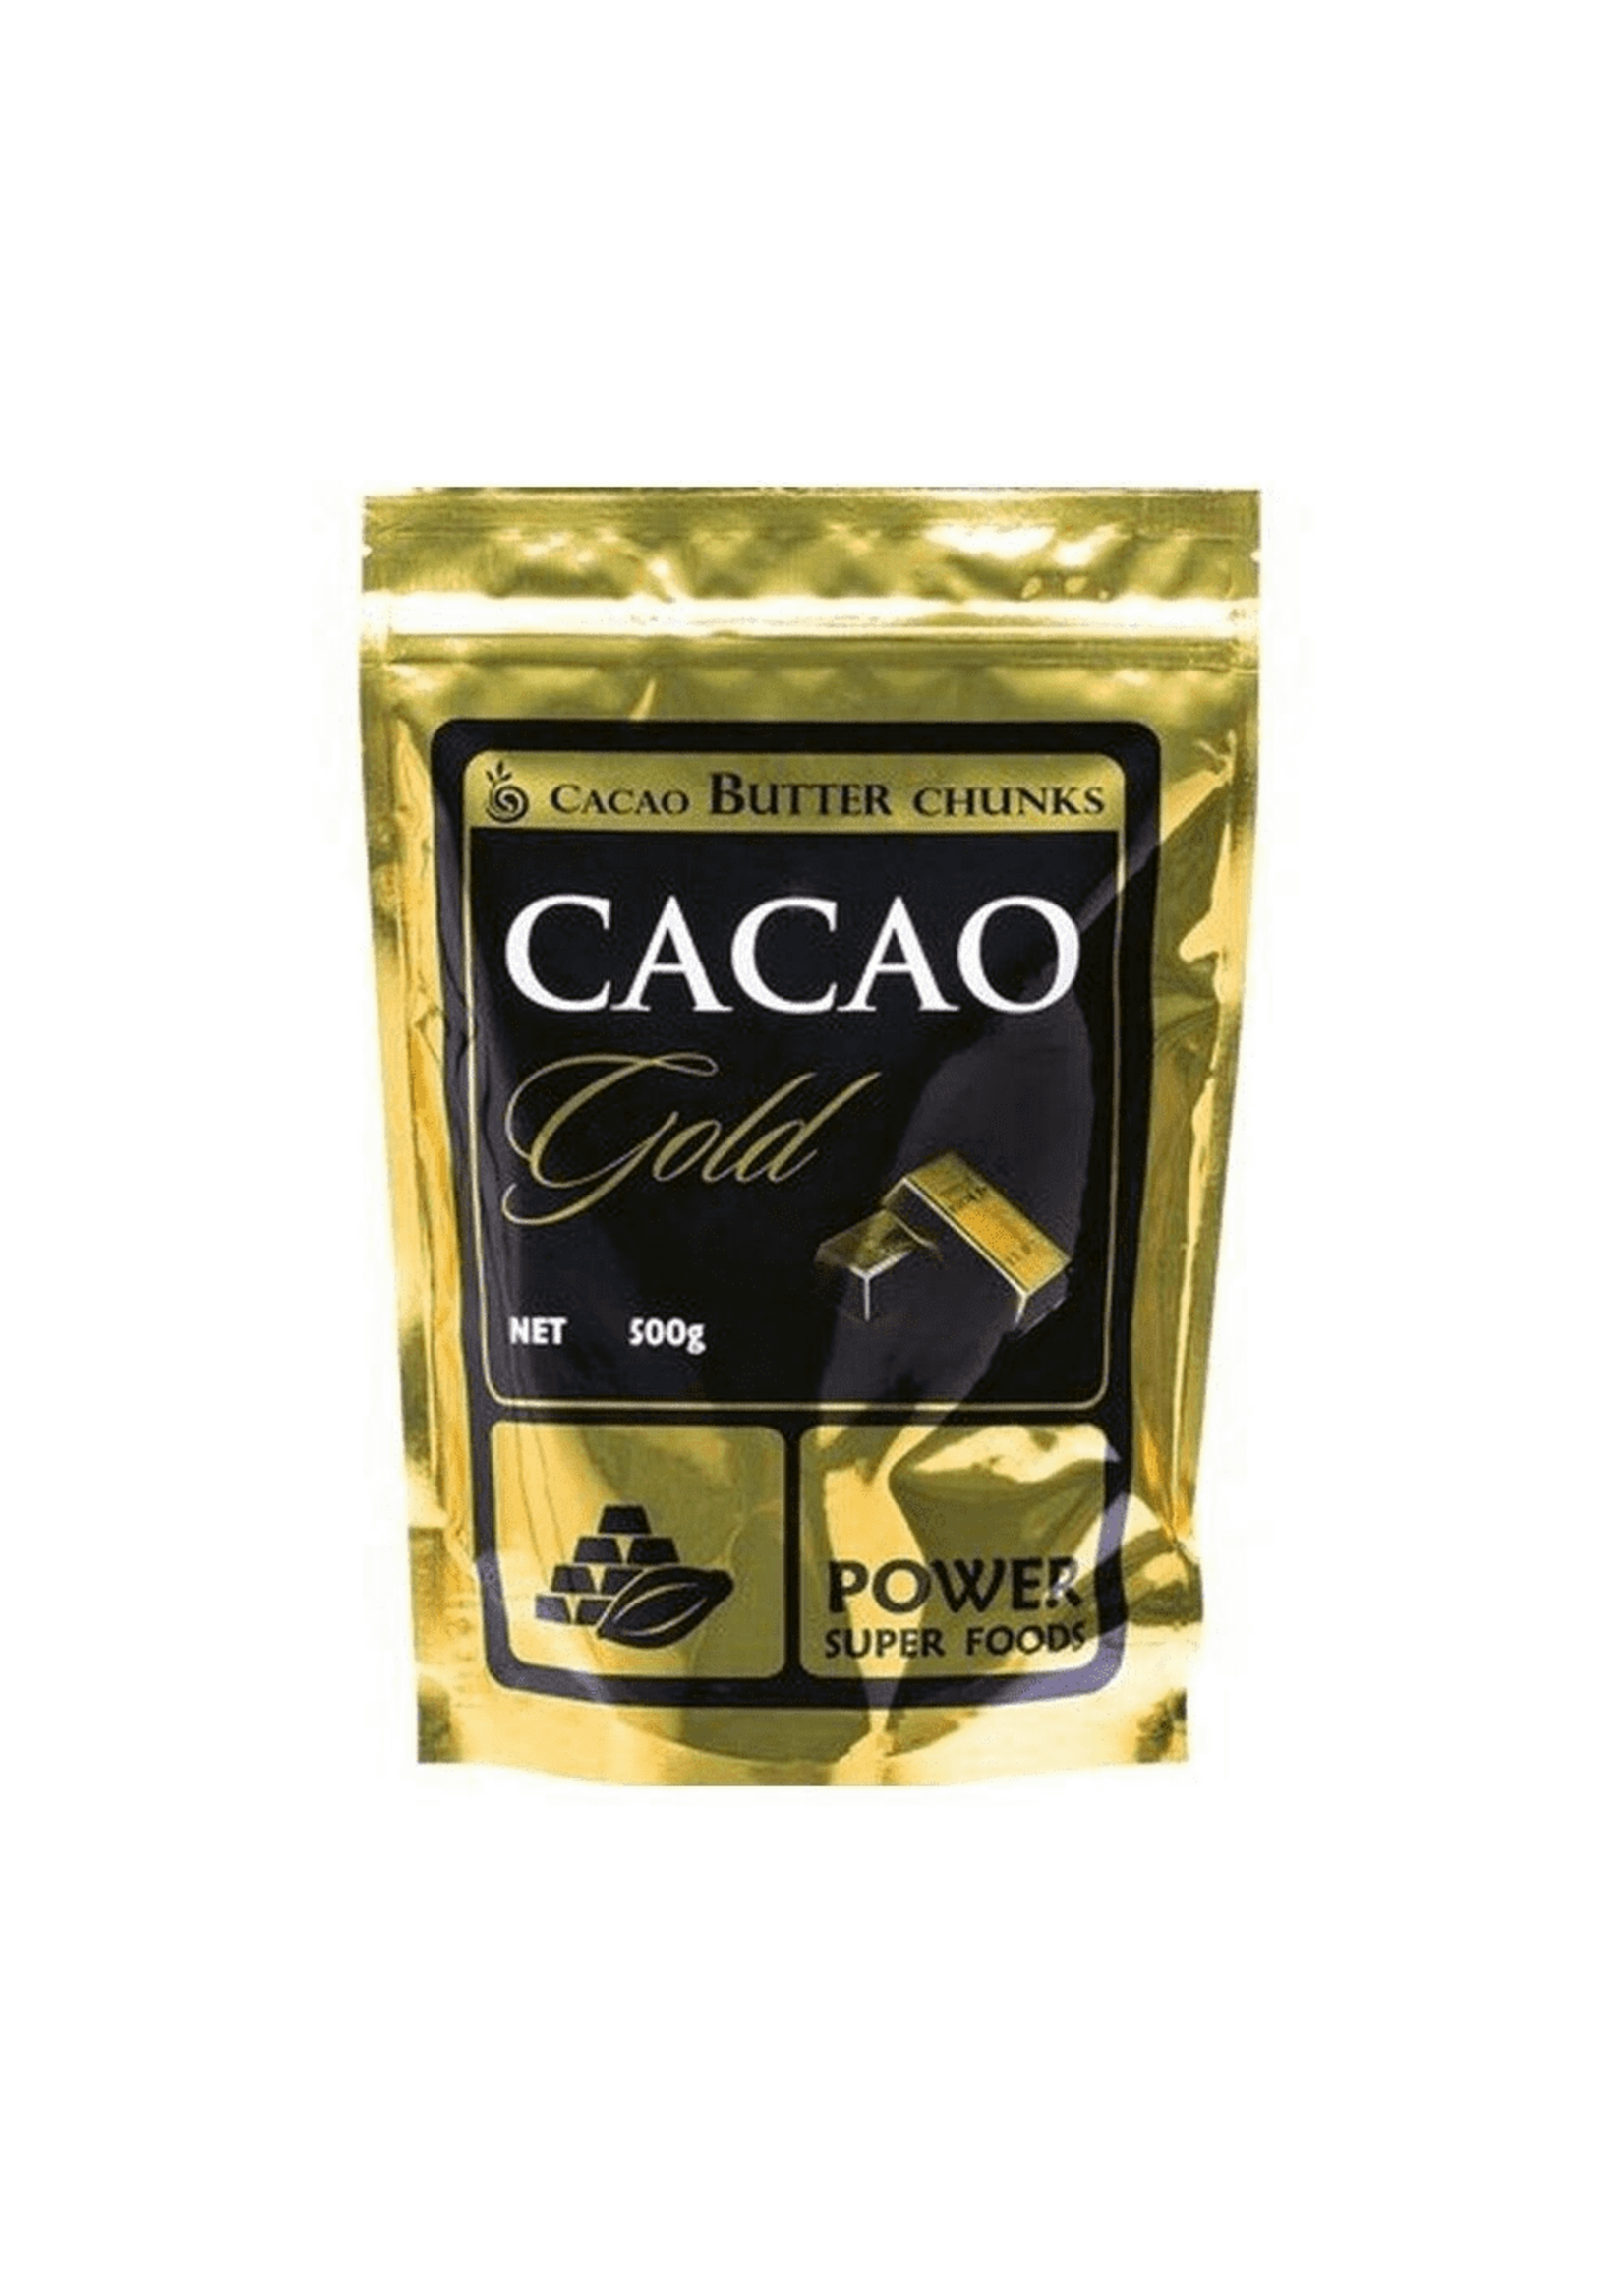 POWER SUPER FOODS Power Super Foods Cacao gold Butter Chunks 500 g